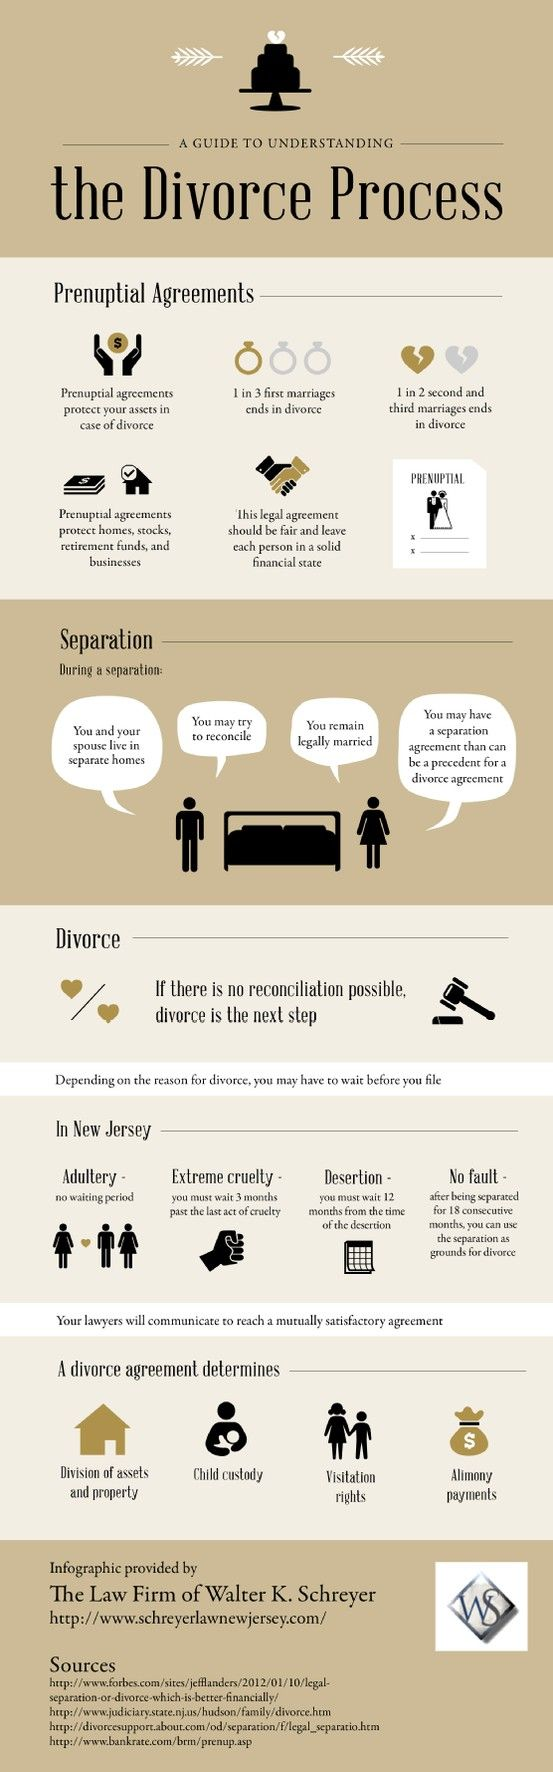 Divorce lawyers help reach a divorce agreement that satisfies both parties involved. #DivorceInfographics